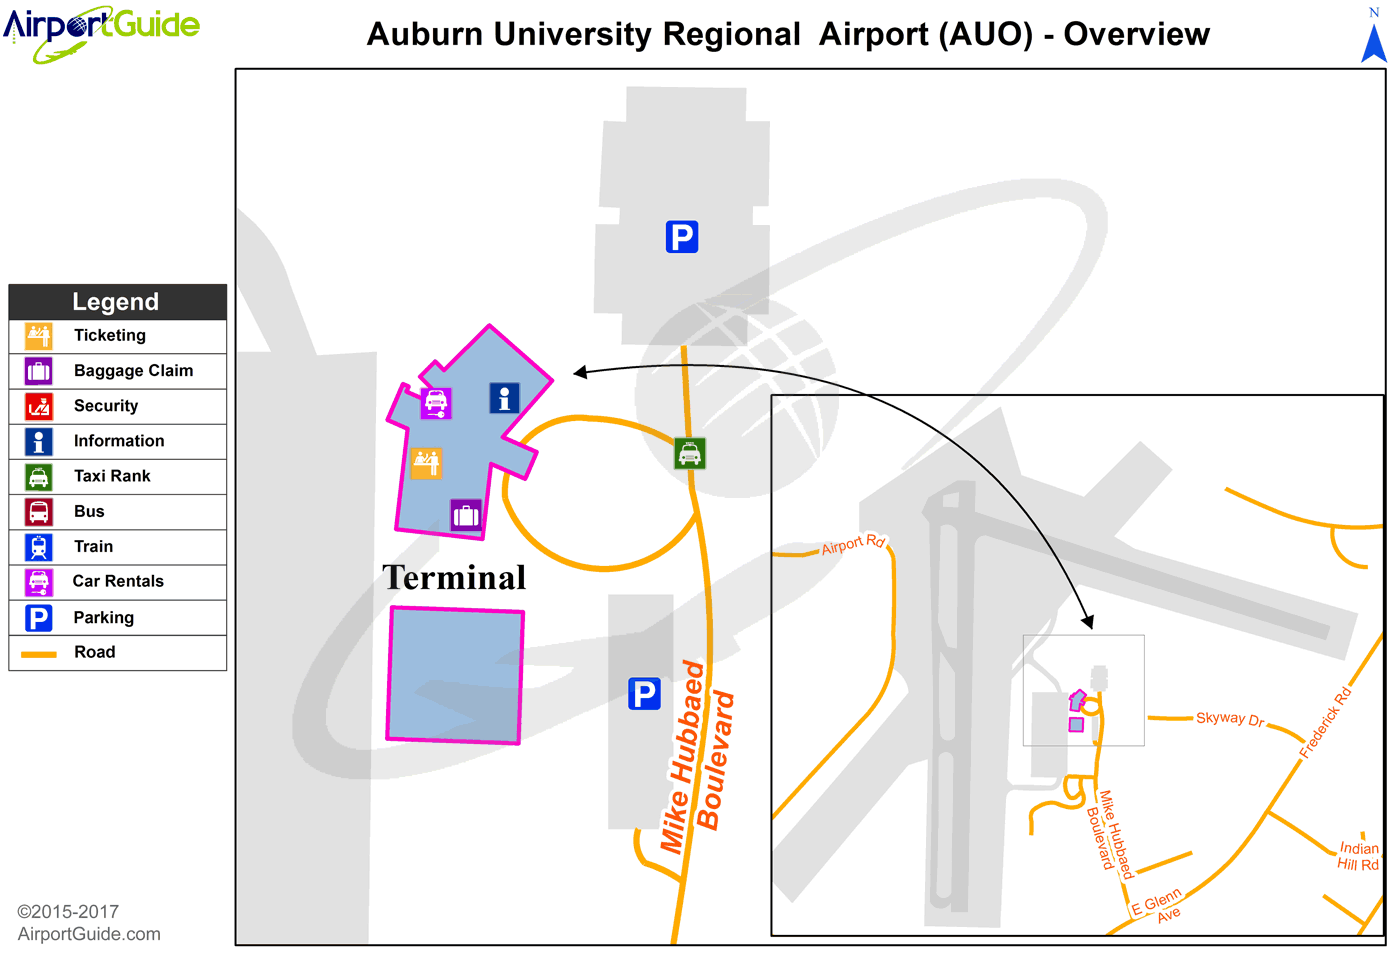 Auburn - Auburn University Regional (AUO) Airport Terminal Map - Overview